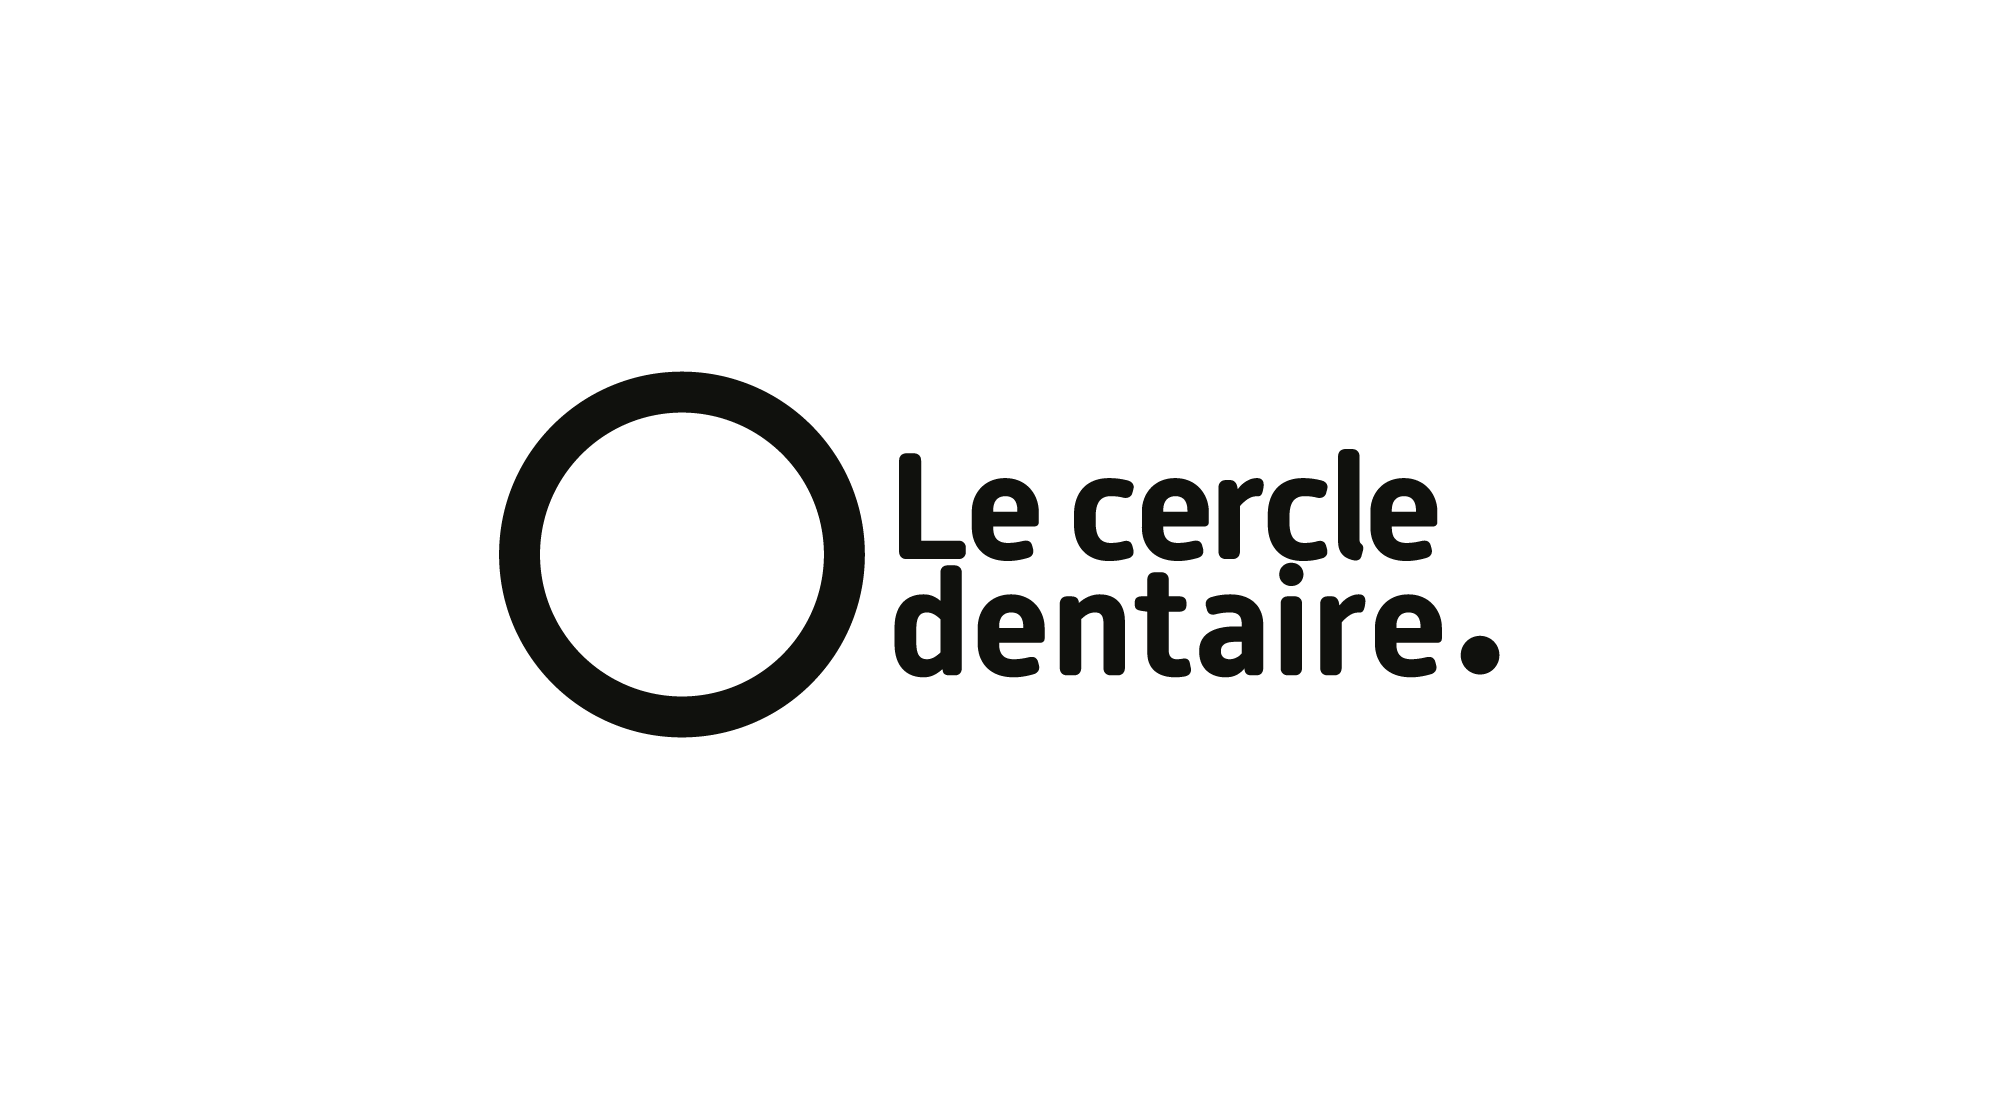 Cercle_dentaire_fond_blanc